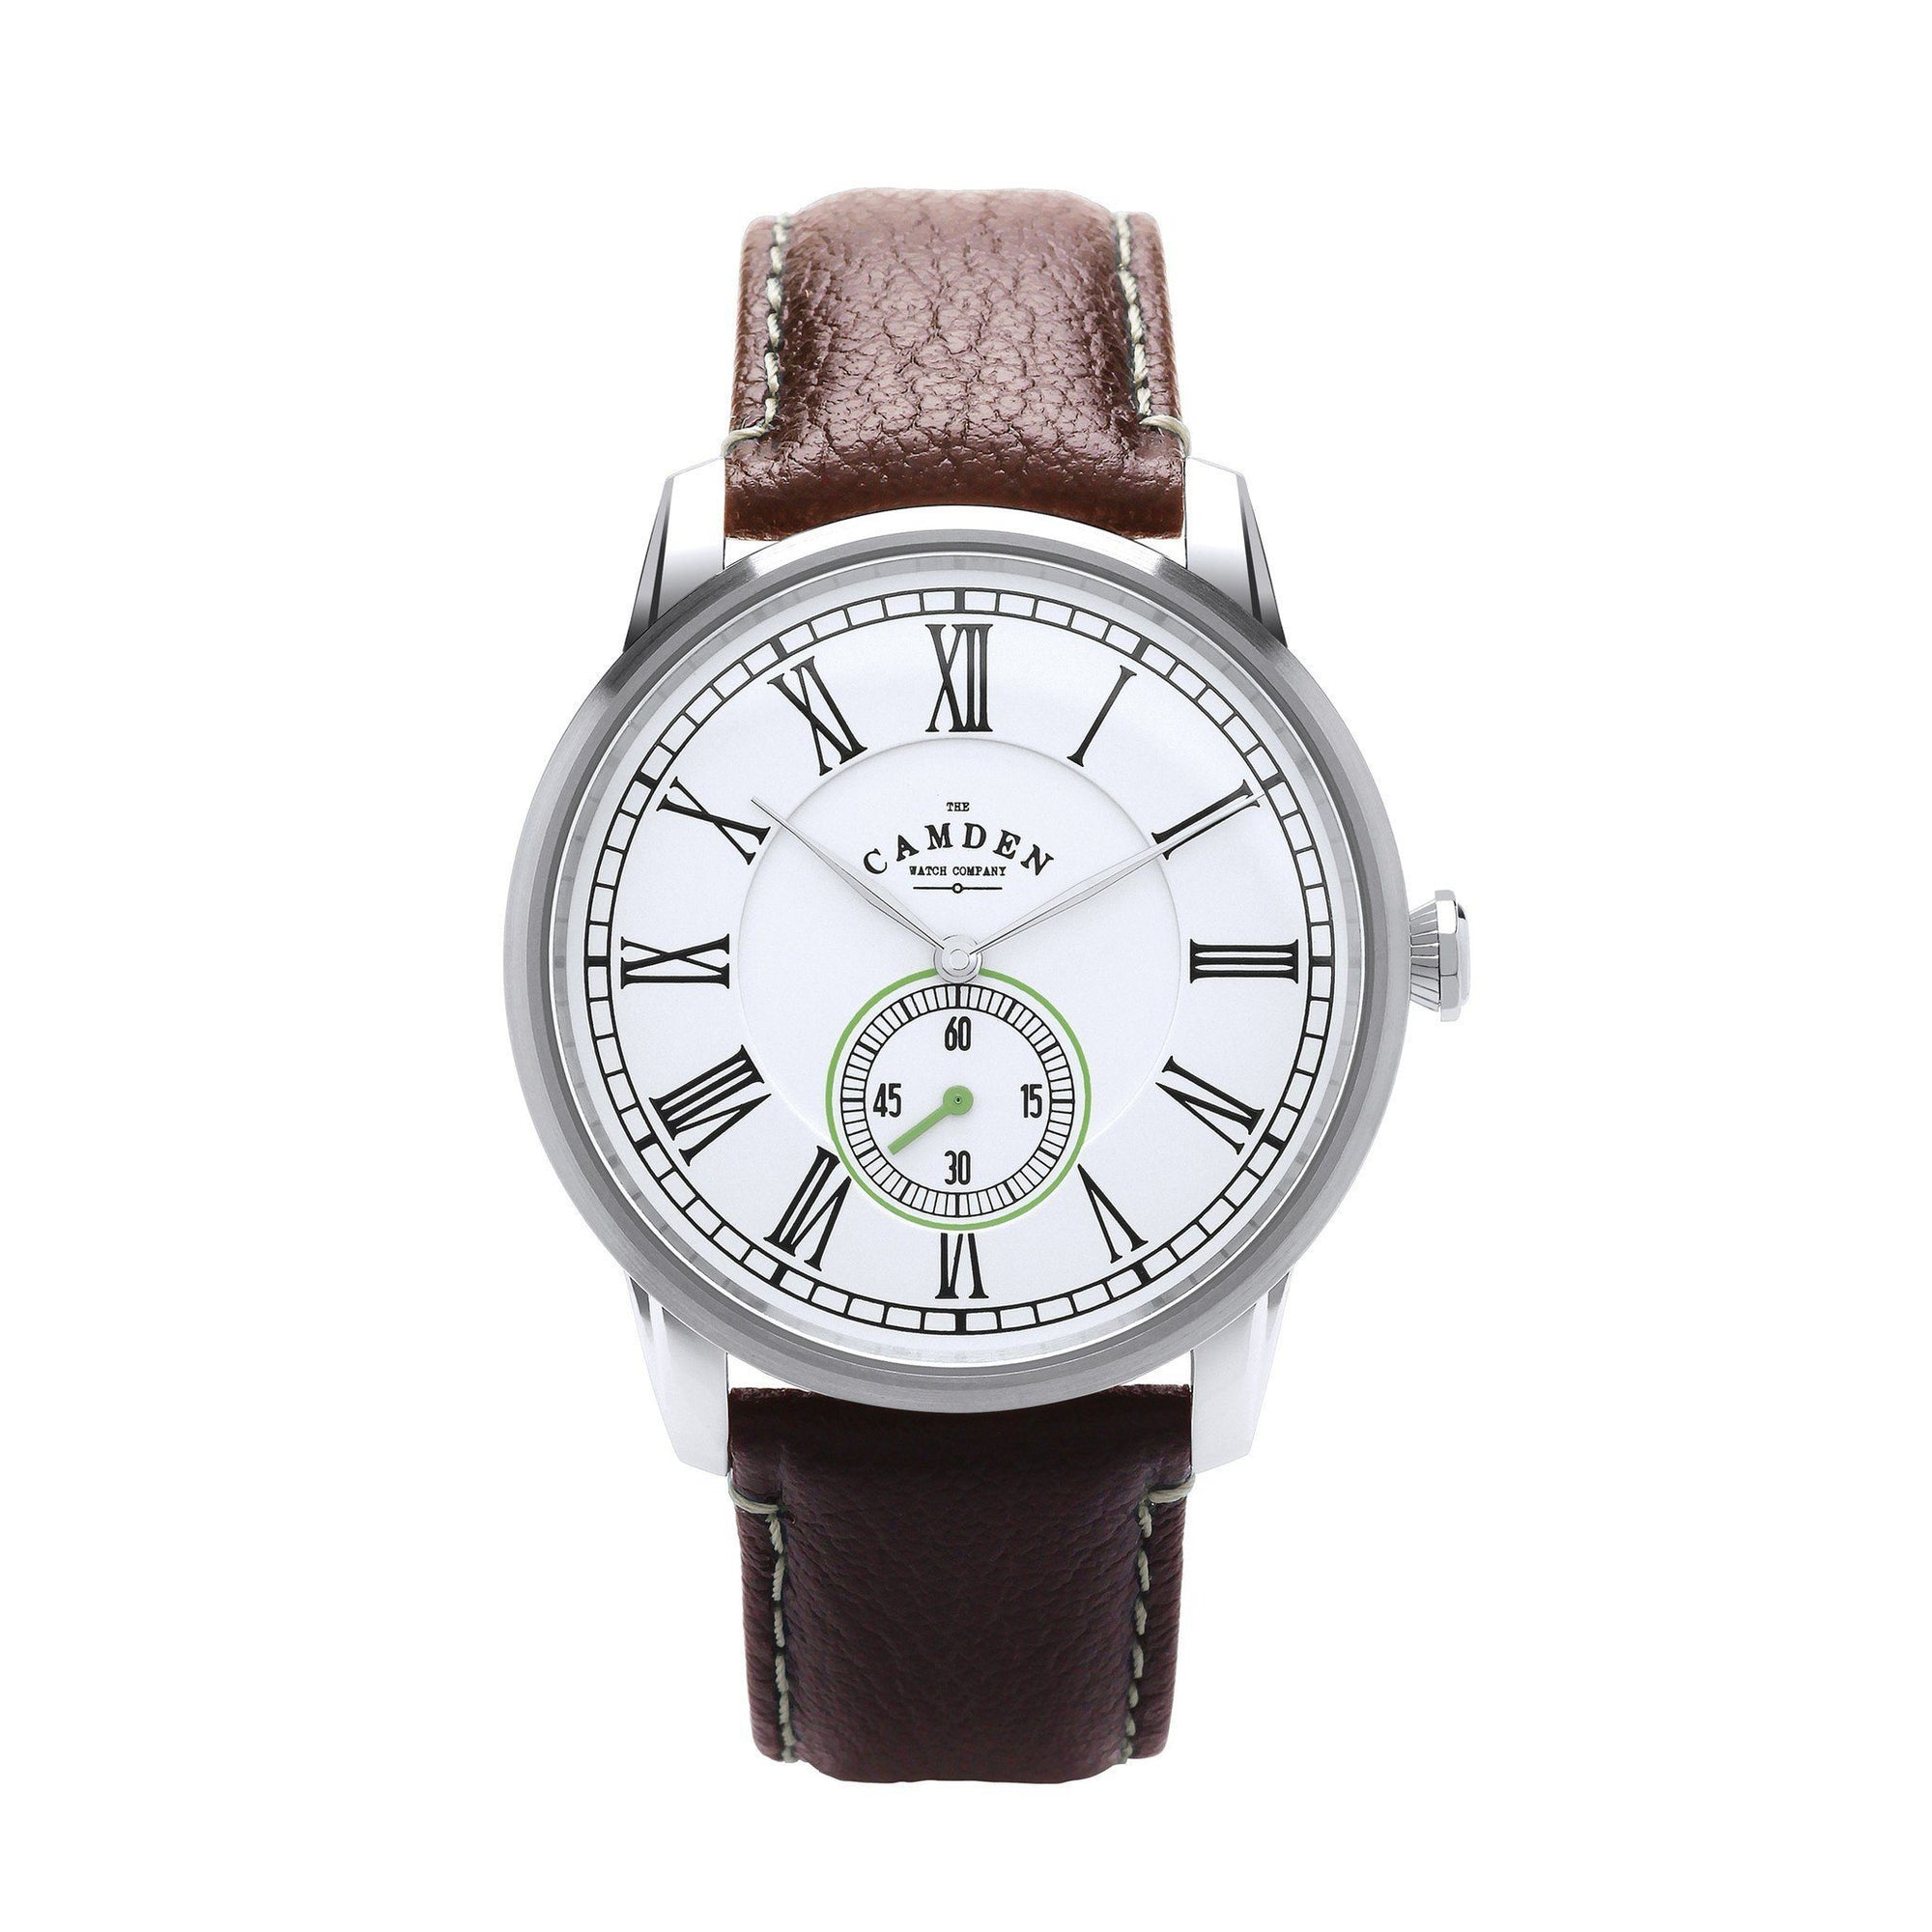 No.29 Gents Classic Watch Steel, Brown Strap and Green Accents